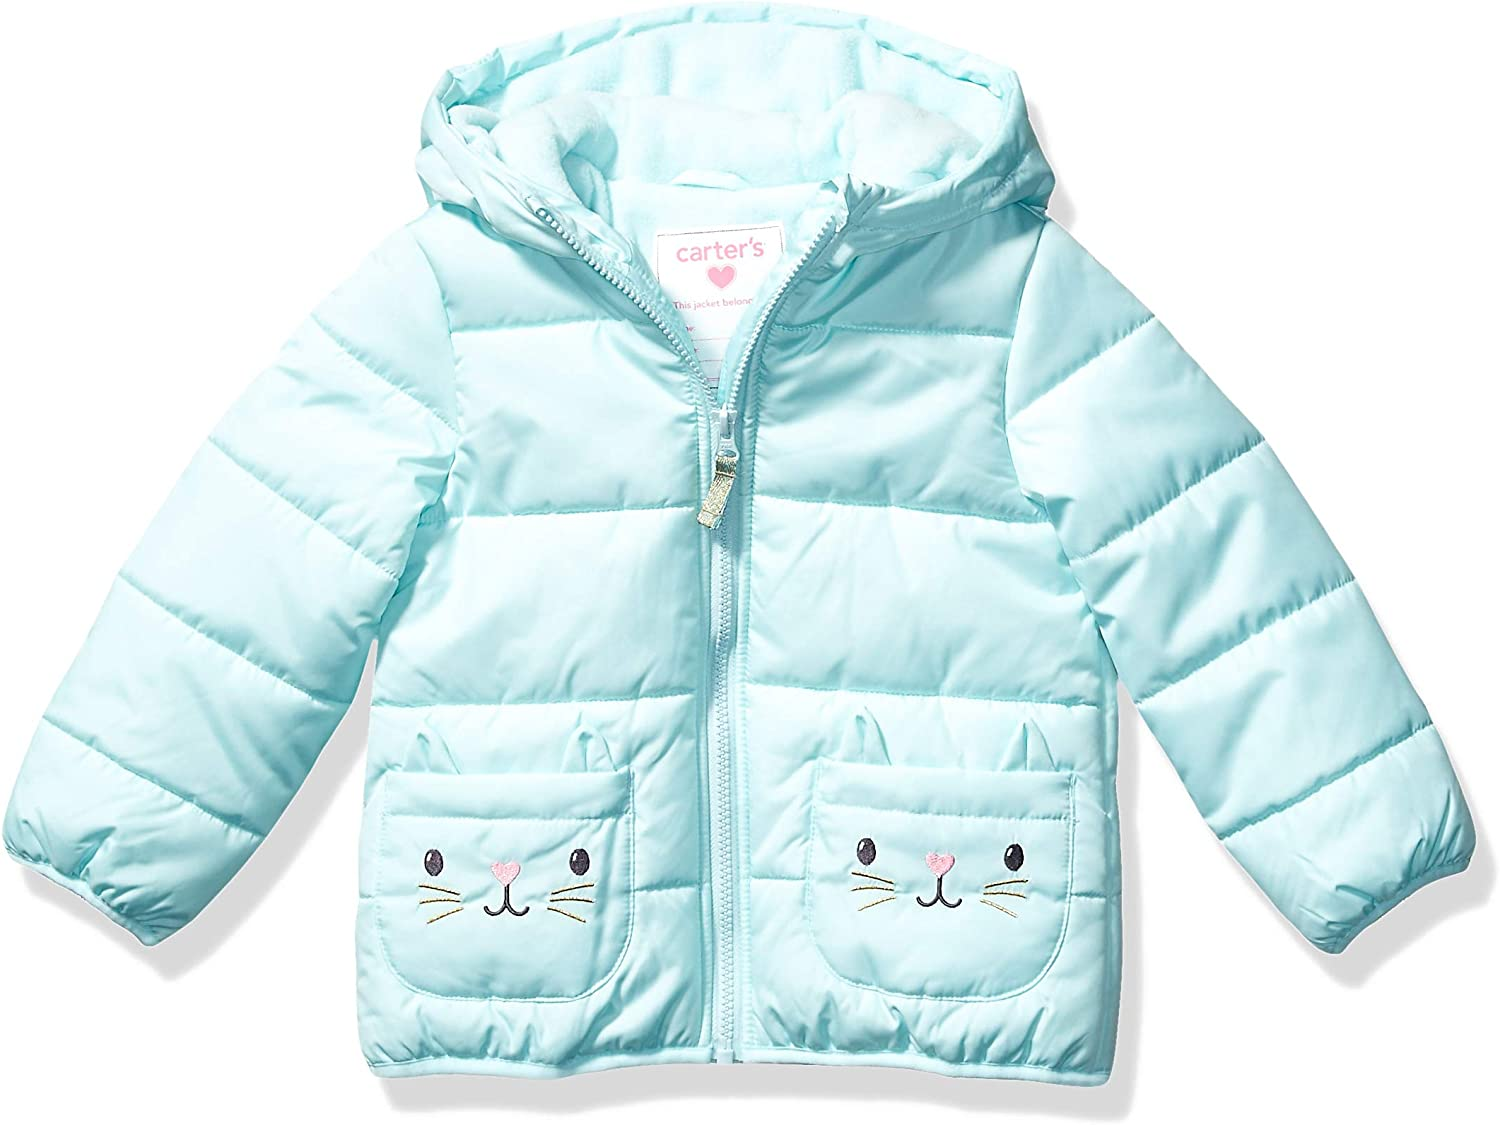 Carter's Girls' Toddler Fleece Lined Critter Puffer Jacket Coat